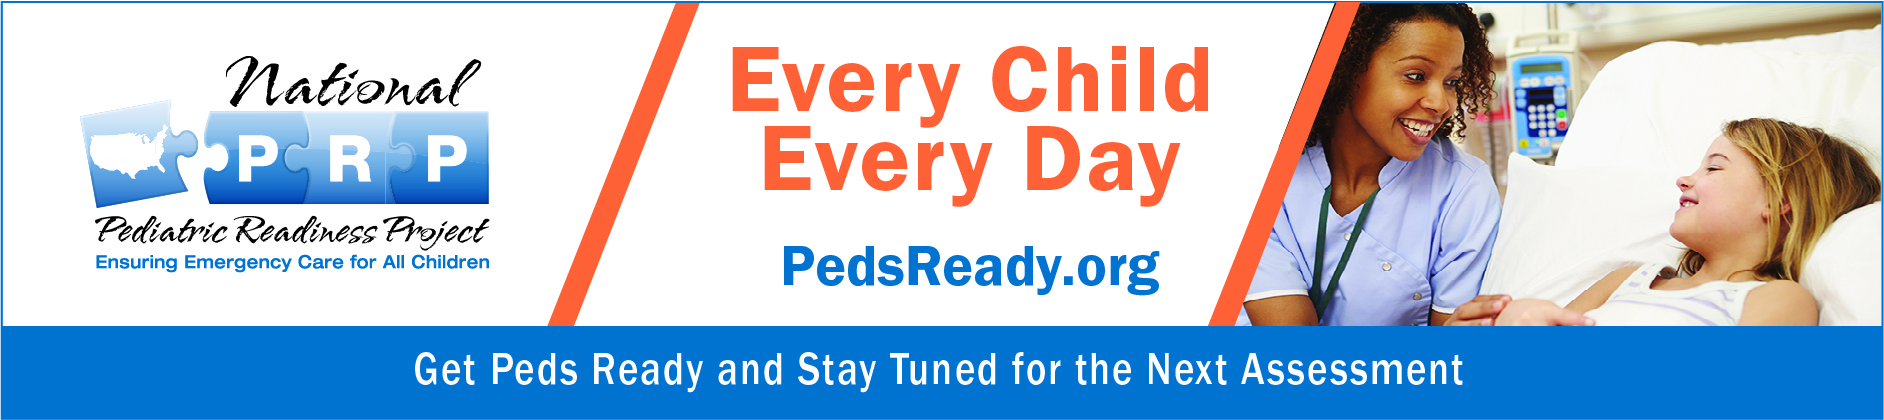 National Pediatric Readiness Assessment - stay tuned for future assessment date